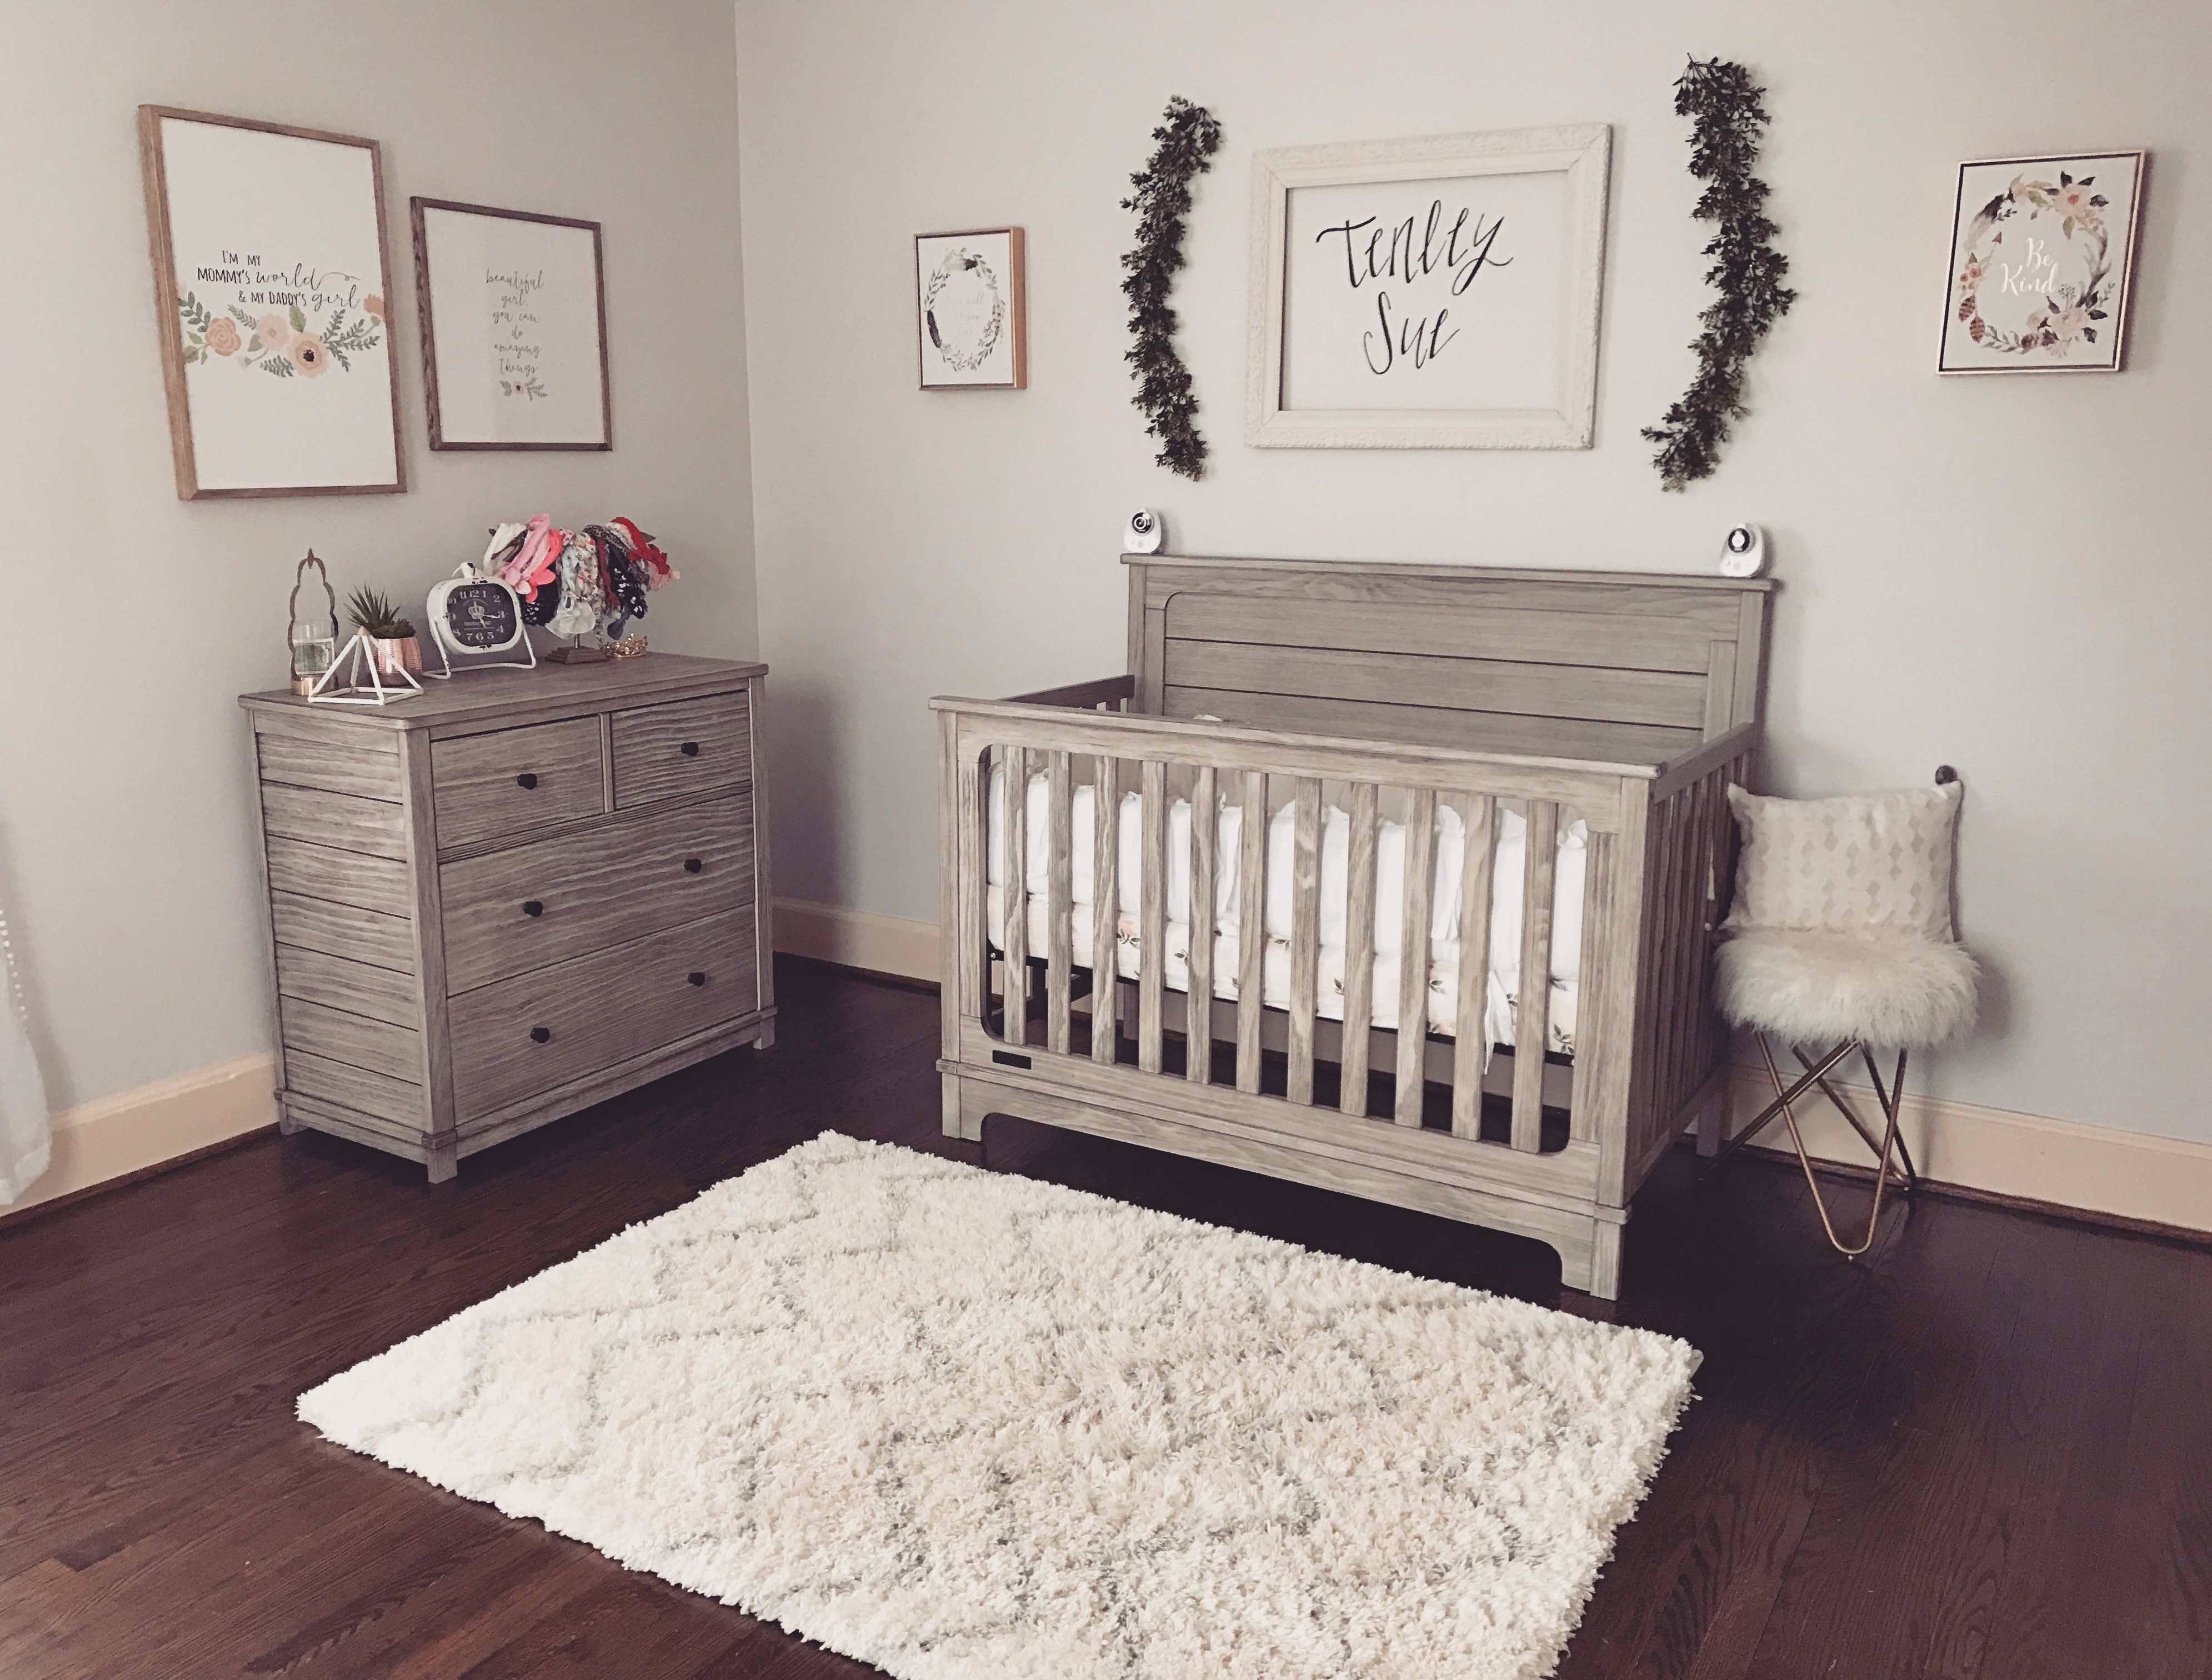 Pin By Lizzy Chesher On Baby Nurseries In 2020 Nursery Baby Room